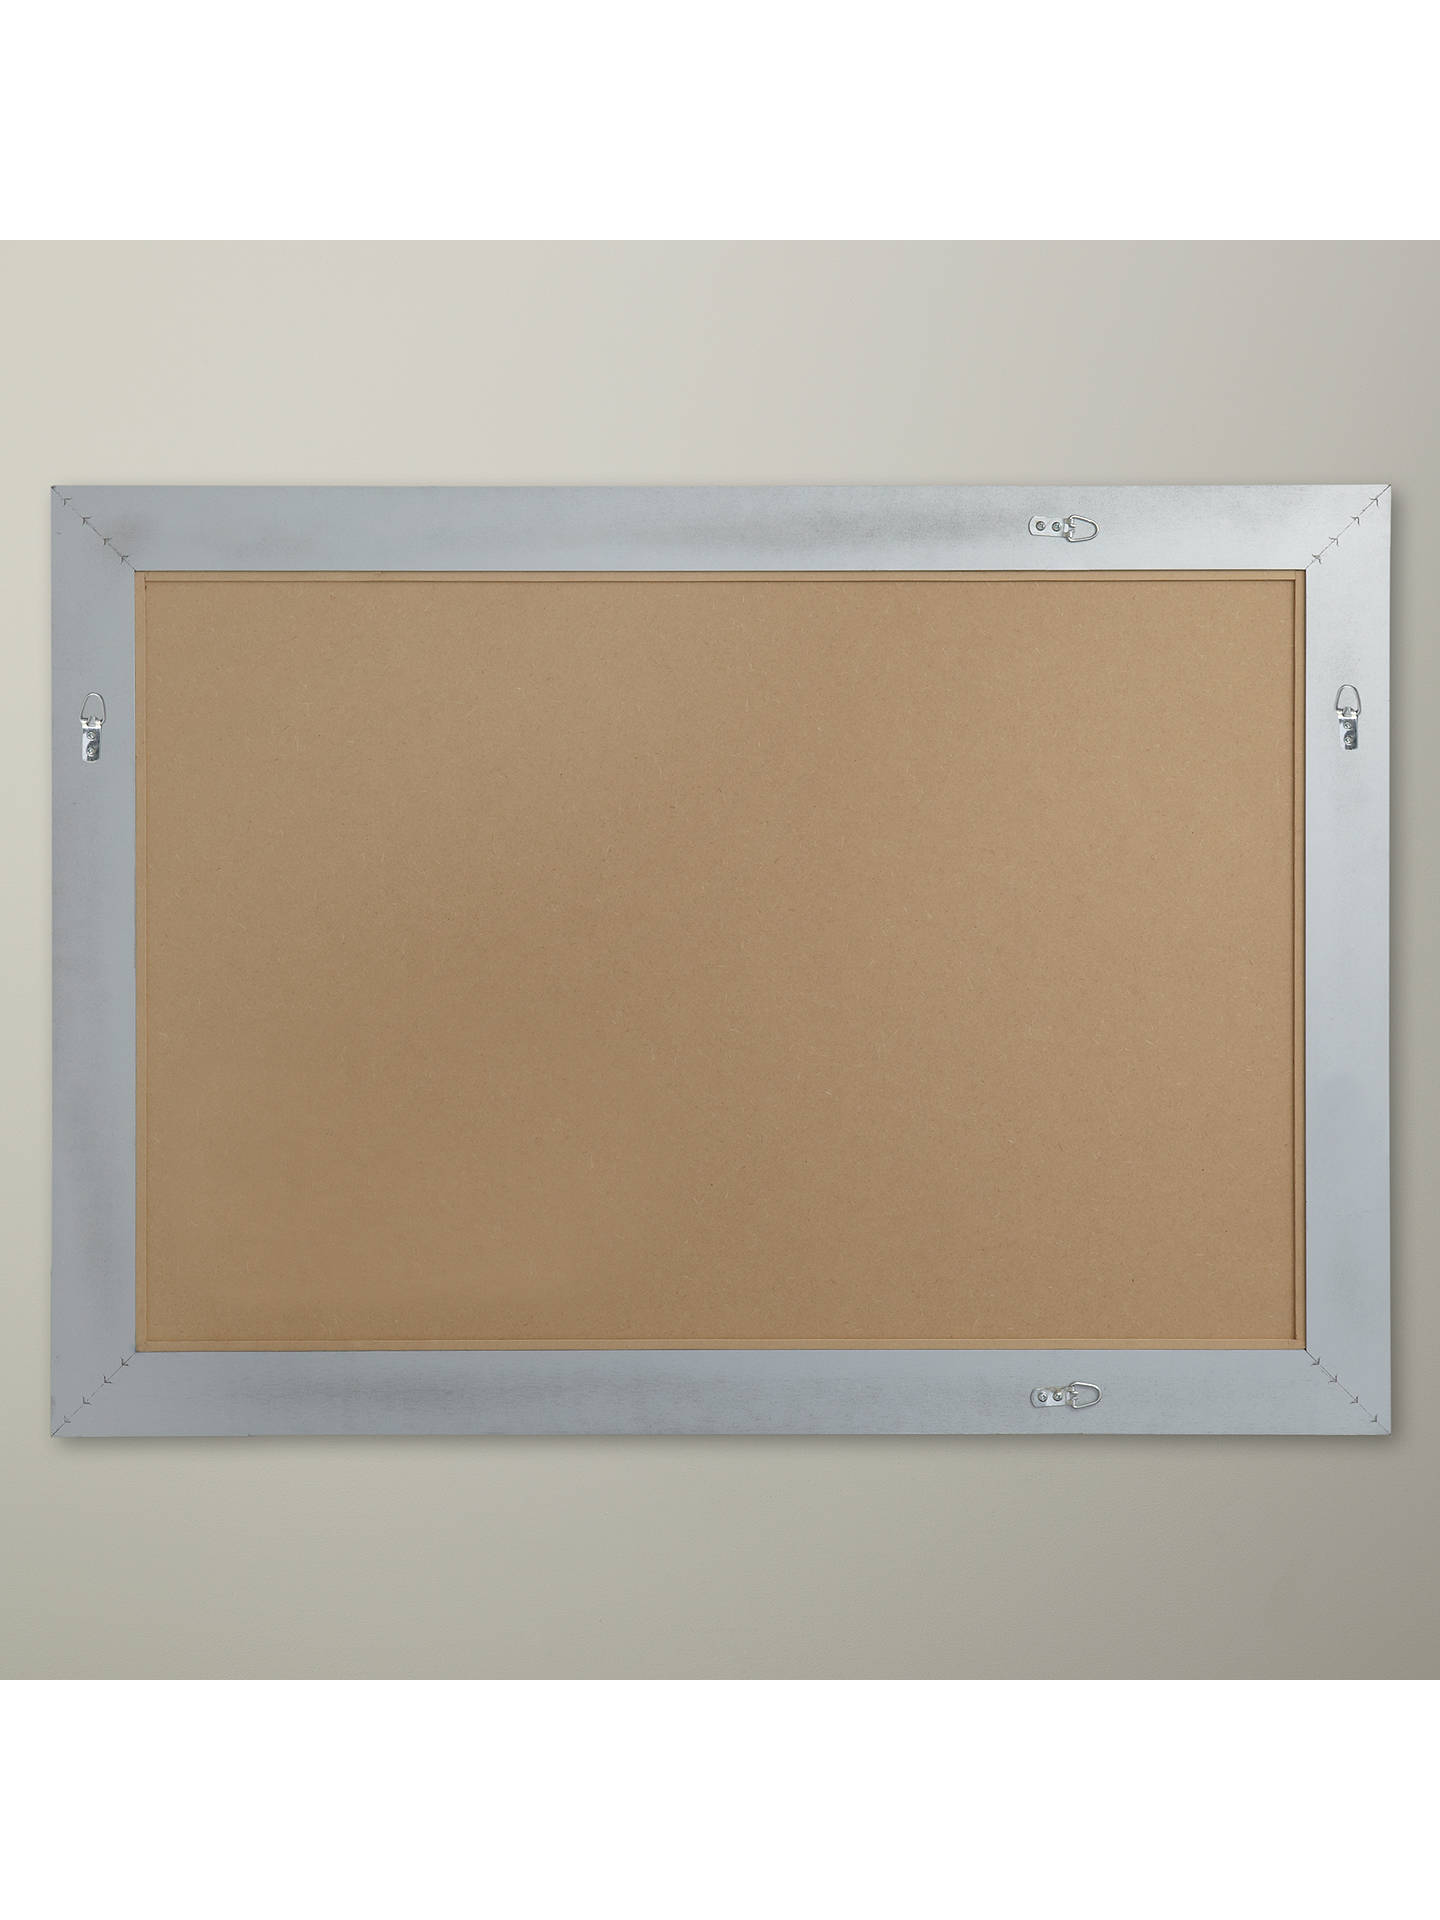 BuyJohn Lewis & Partners Riley Mirror, Clear, 90 x 65cm Online at johnlewis.com